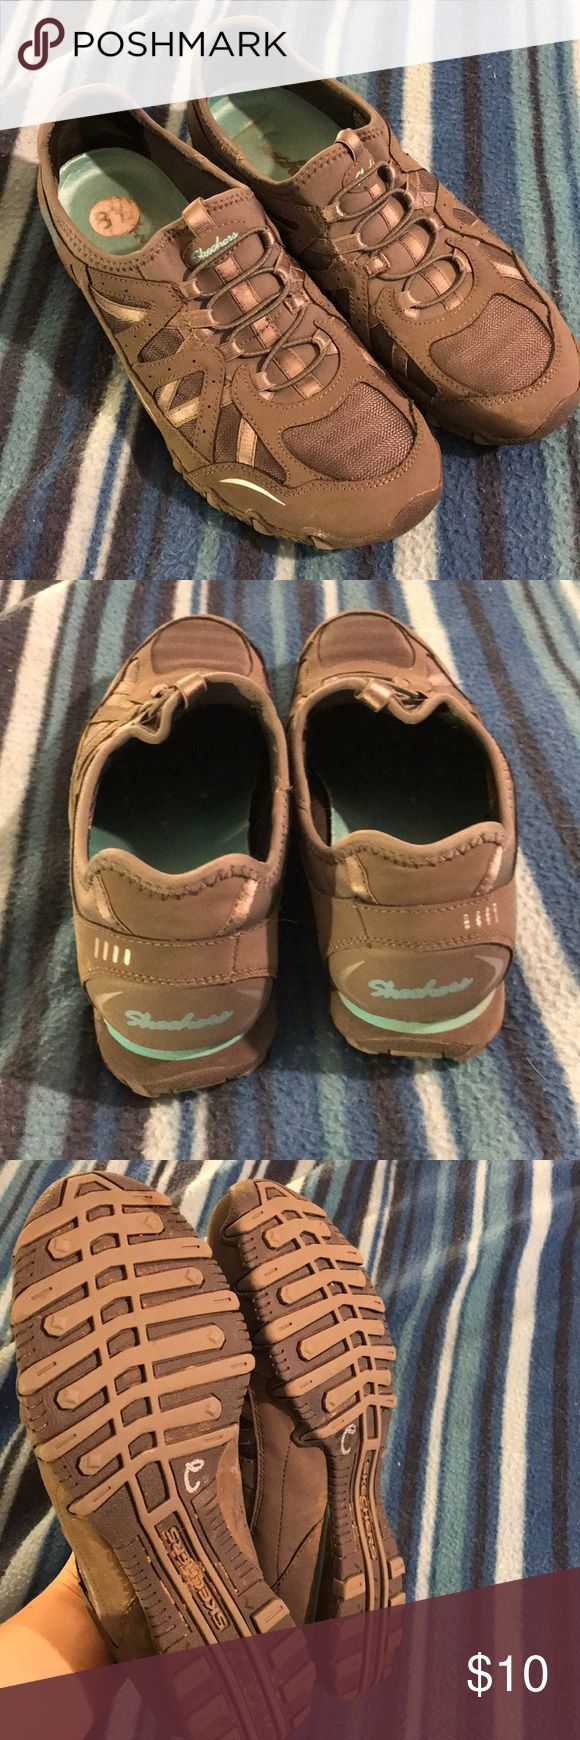 Skechers Slip On Shoes 👞 Like brand new! Still has sticker! Worn maybe two times, very comfy! Comes from smoke free home, no odors! Skechers Shoes Athletic Shoes